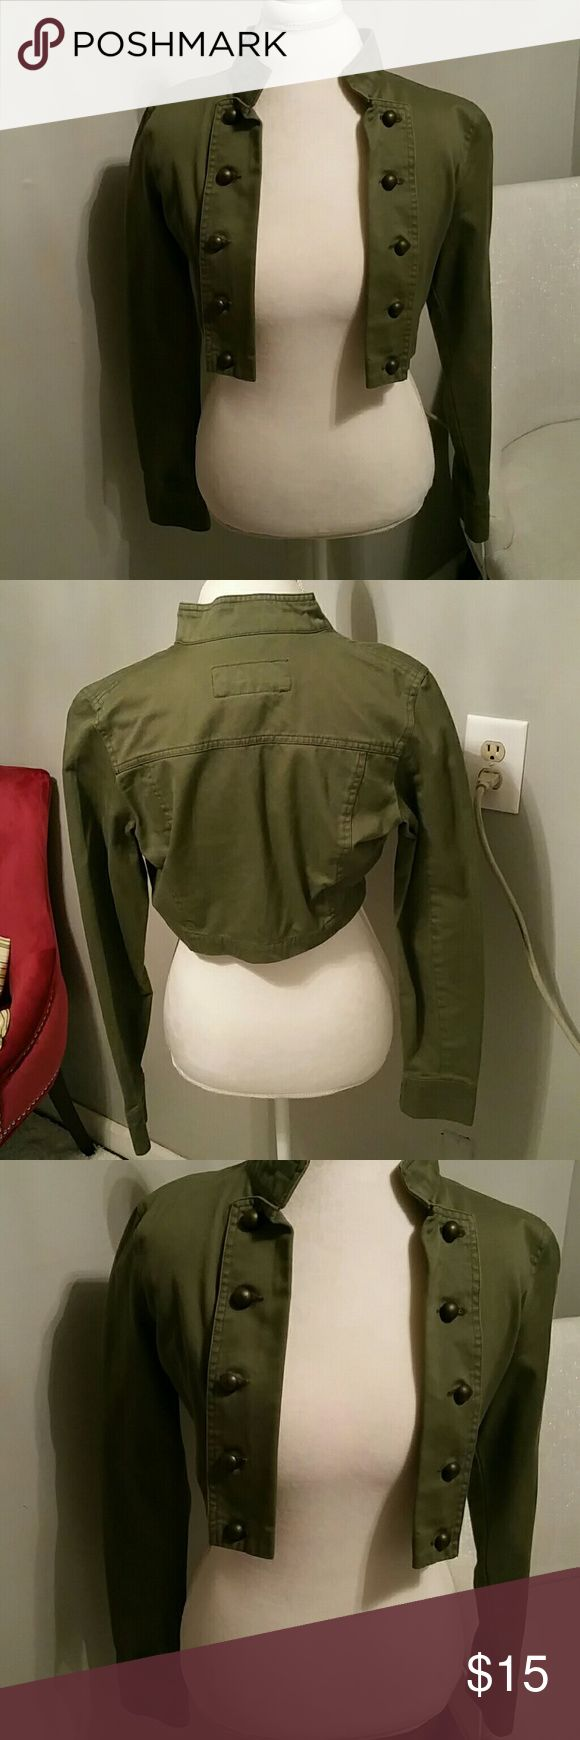 Marching band  inspired jacket in olive green Marching band inspired jacket in olive green Jackets & Coats